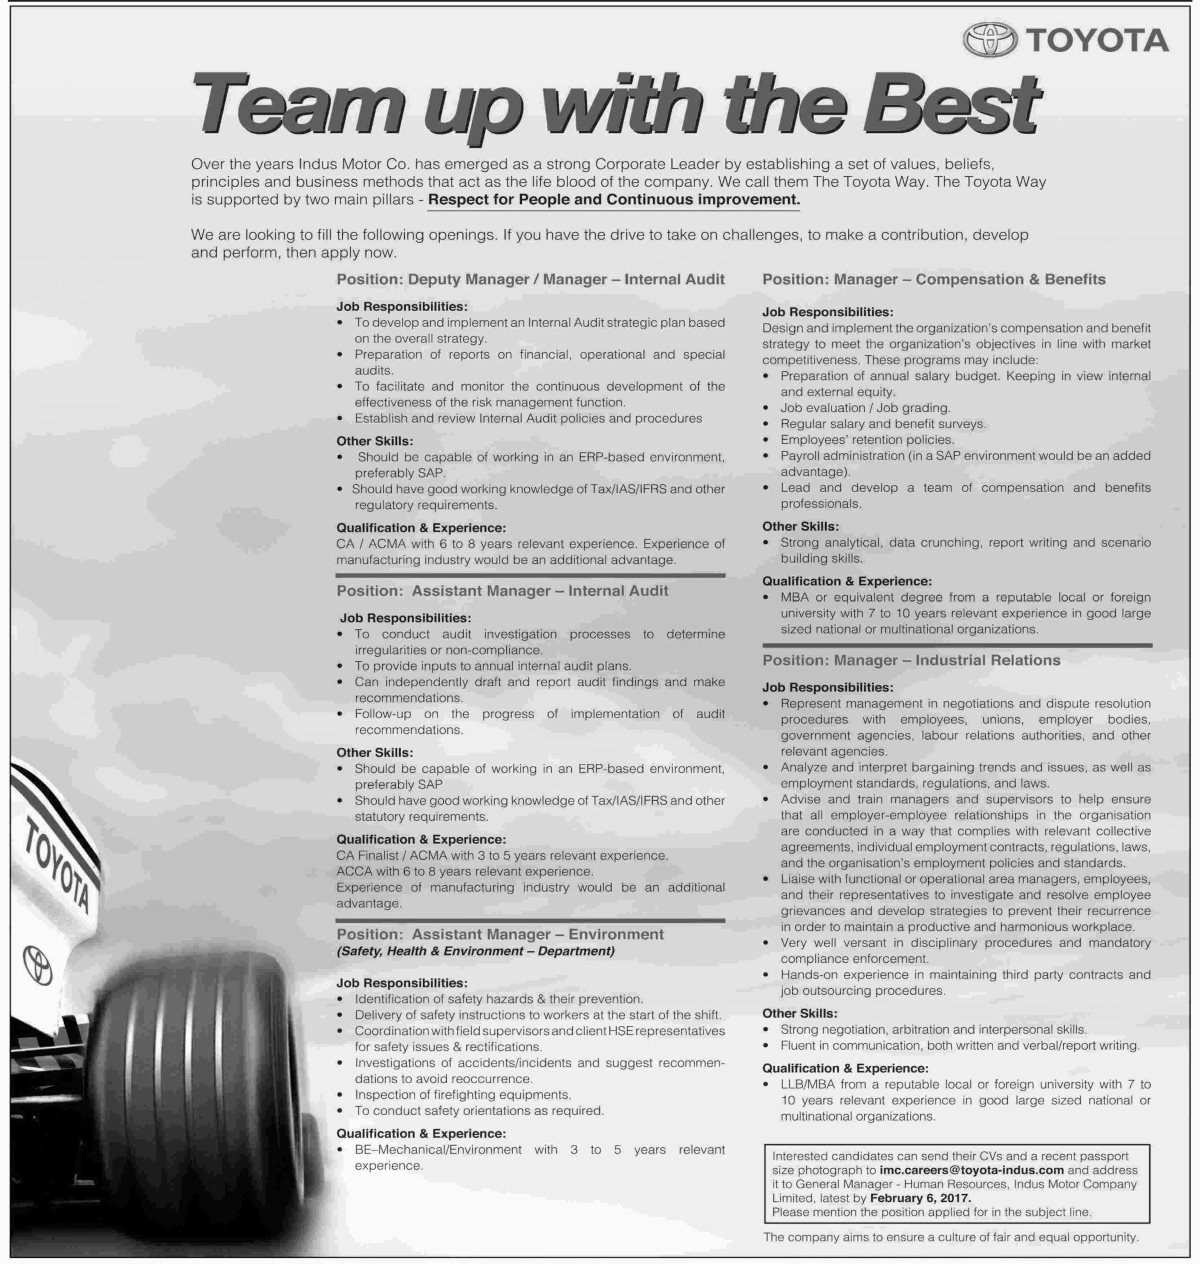 toyota jobs 2017 available for 5 admin finance toyota jobs 2017 available for 5 admin finance vacancies